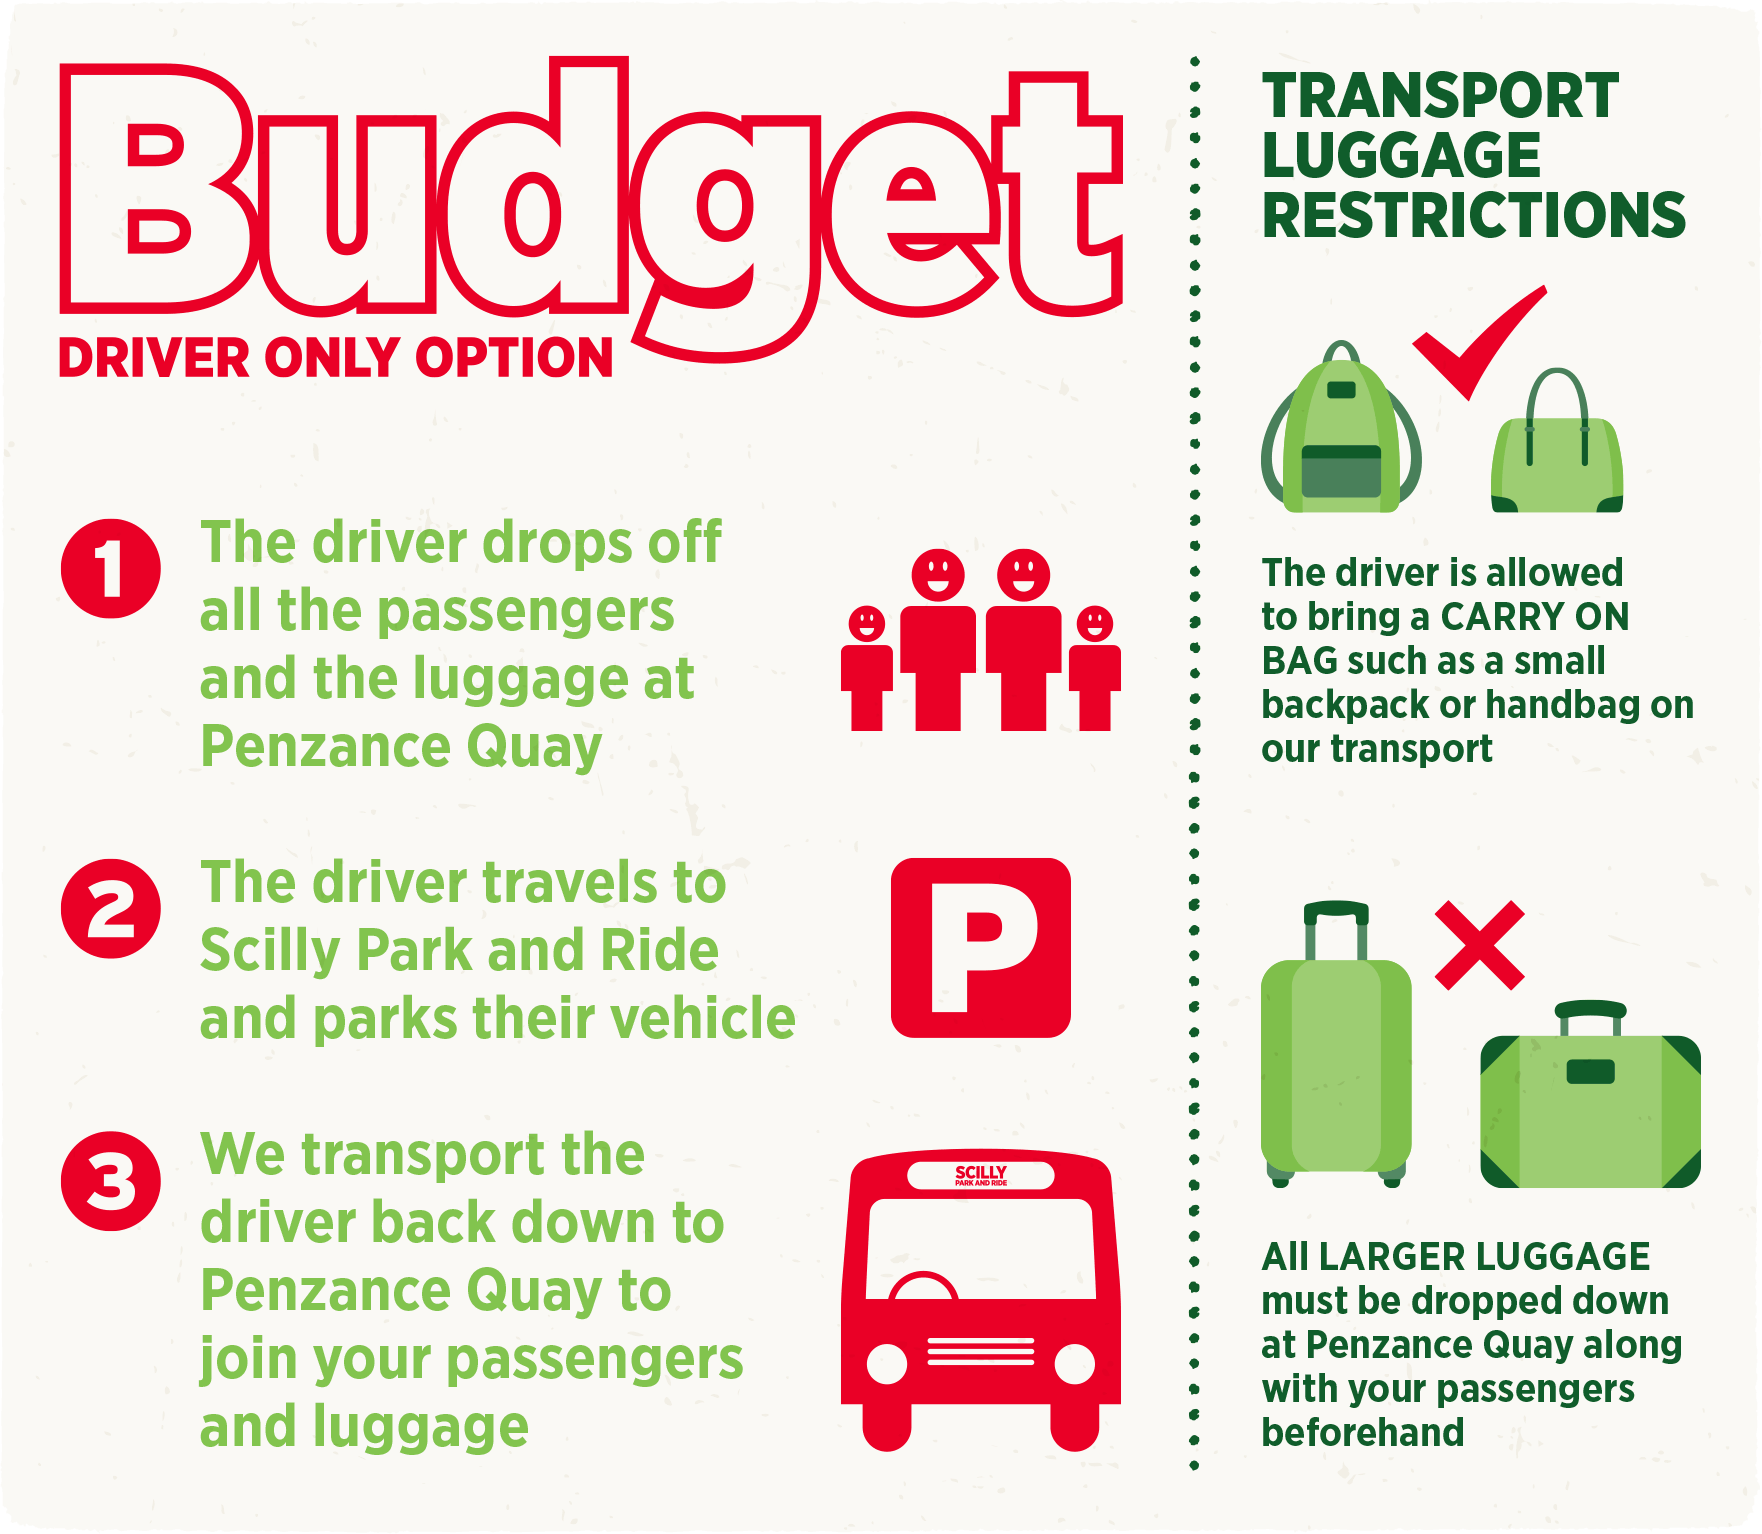 Save Money with Budget Park and Ride driver only transport option